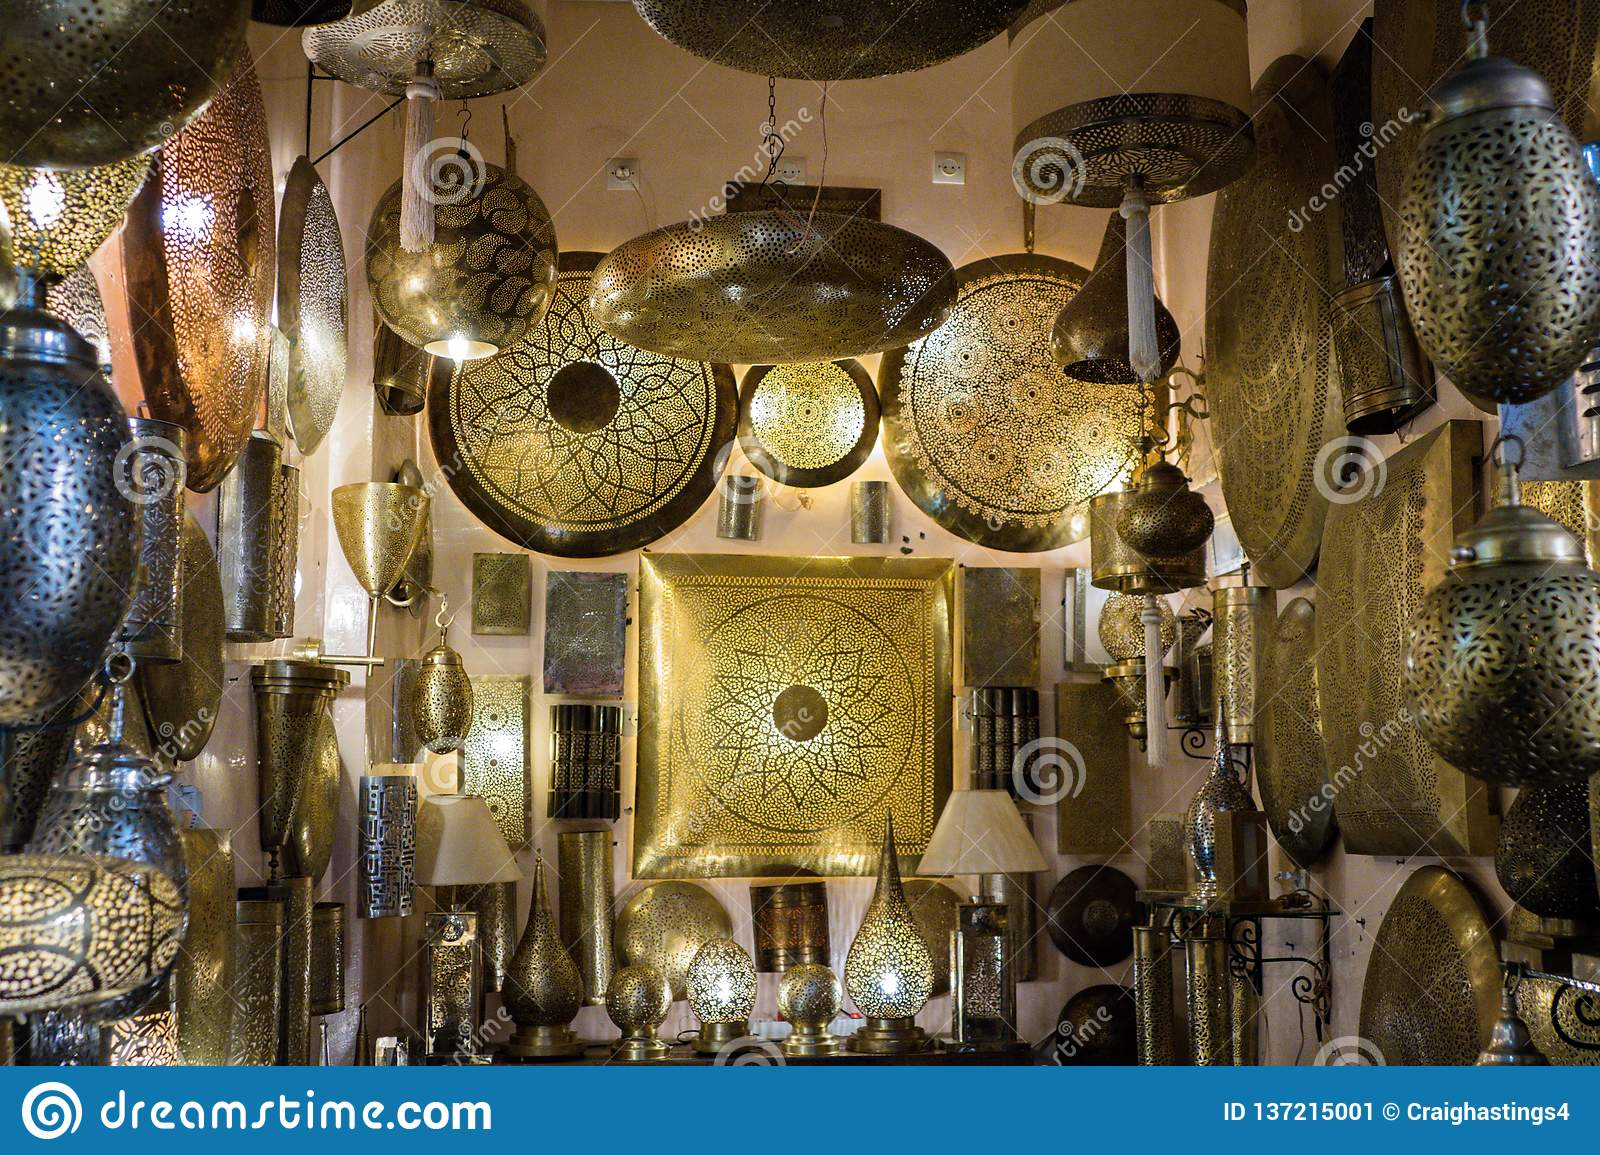 Selection Of Luxury Lamps For Sale In The Market Square Souq